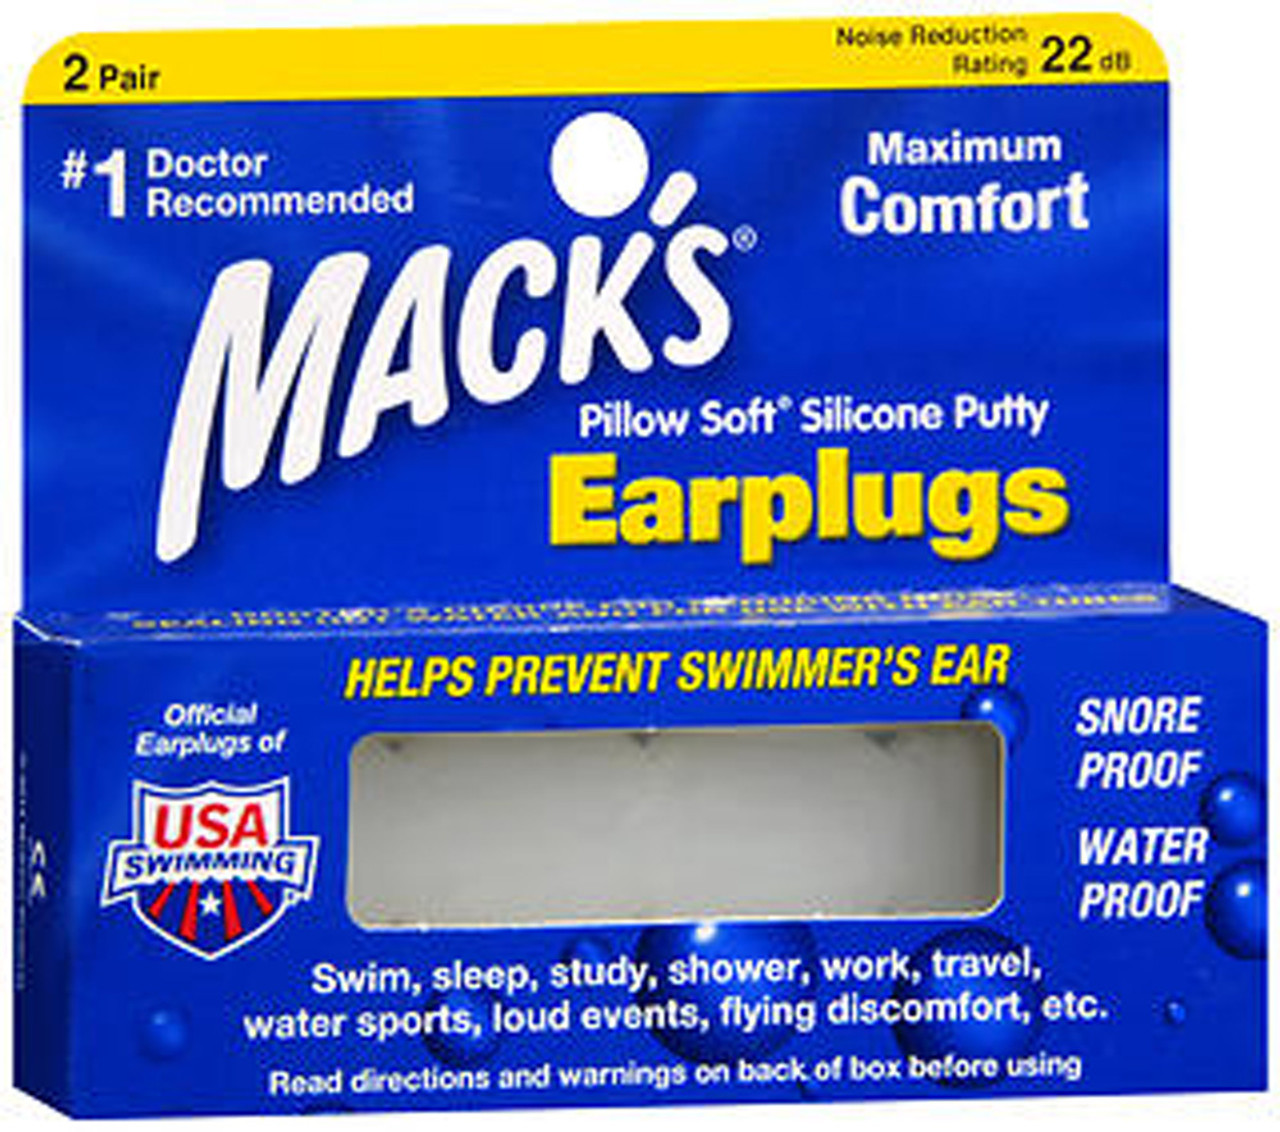 Pack of 2 Pairs Macks Pillow Soft Silicone Putty Ear Plugs